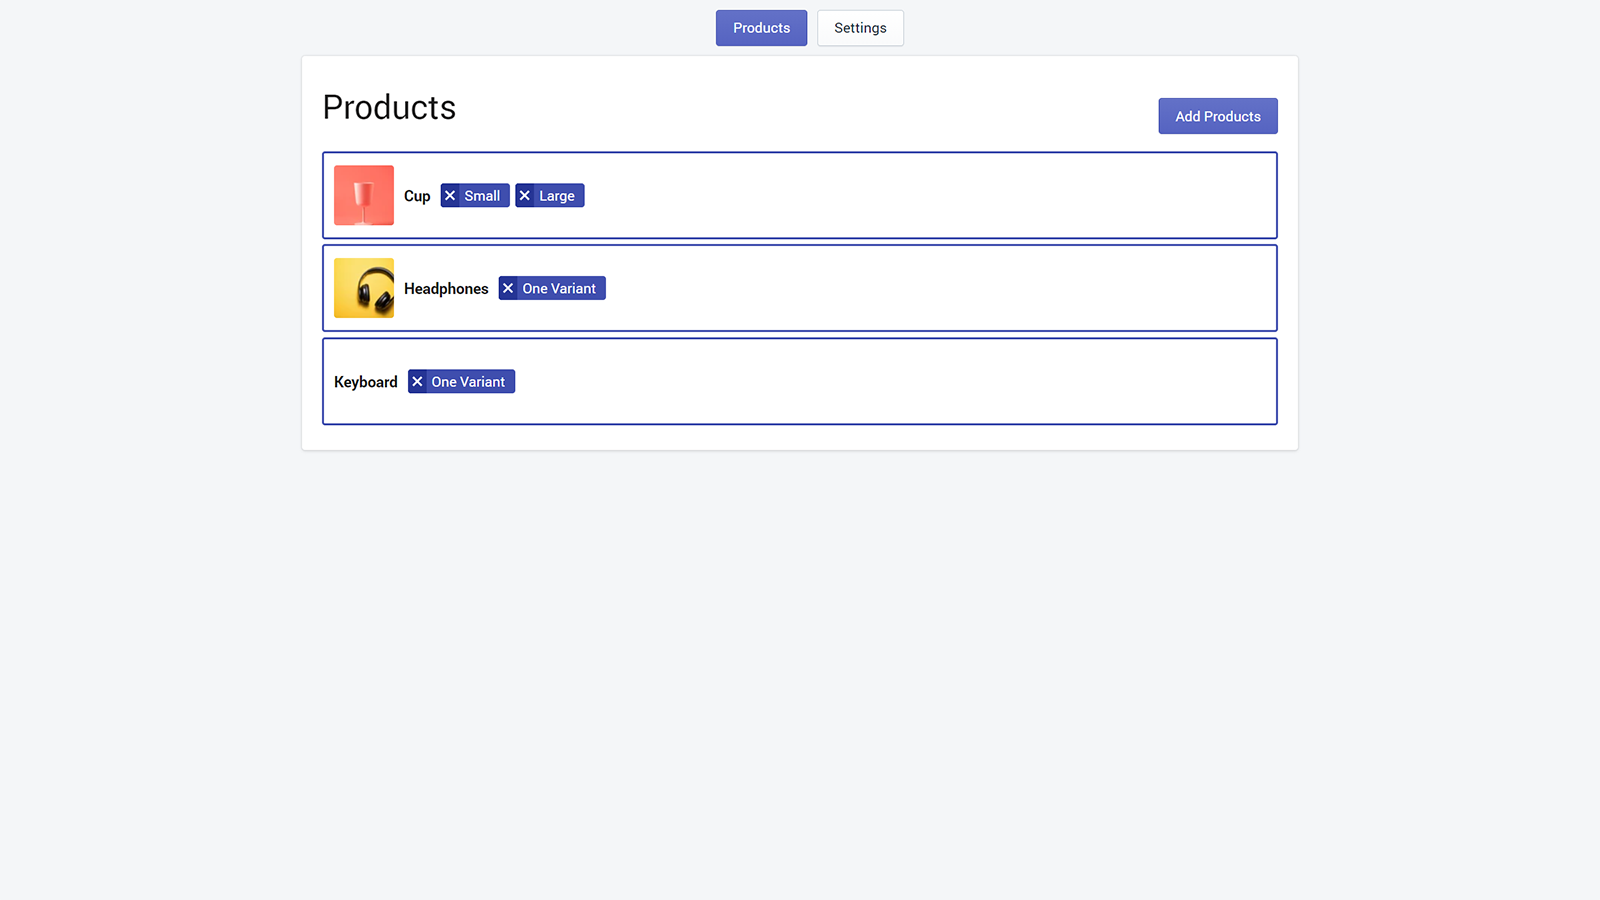 Selected products list